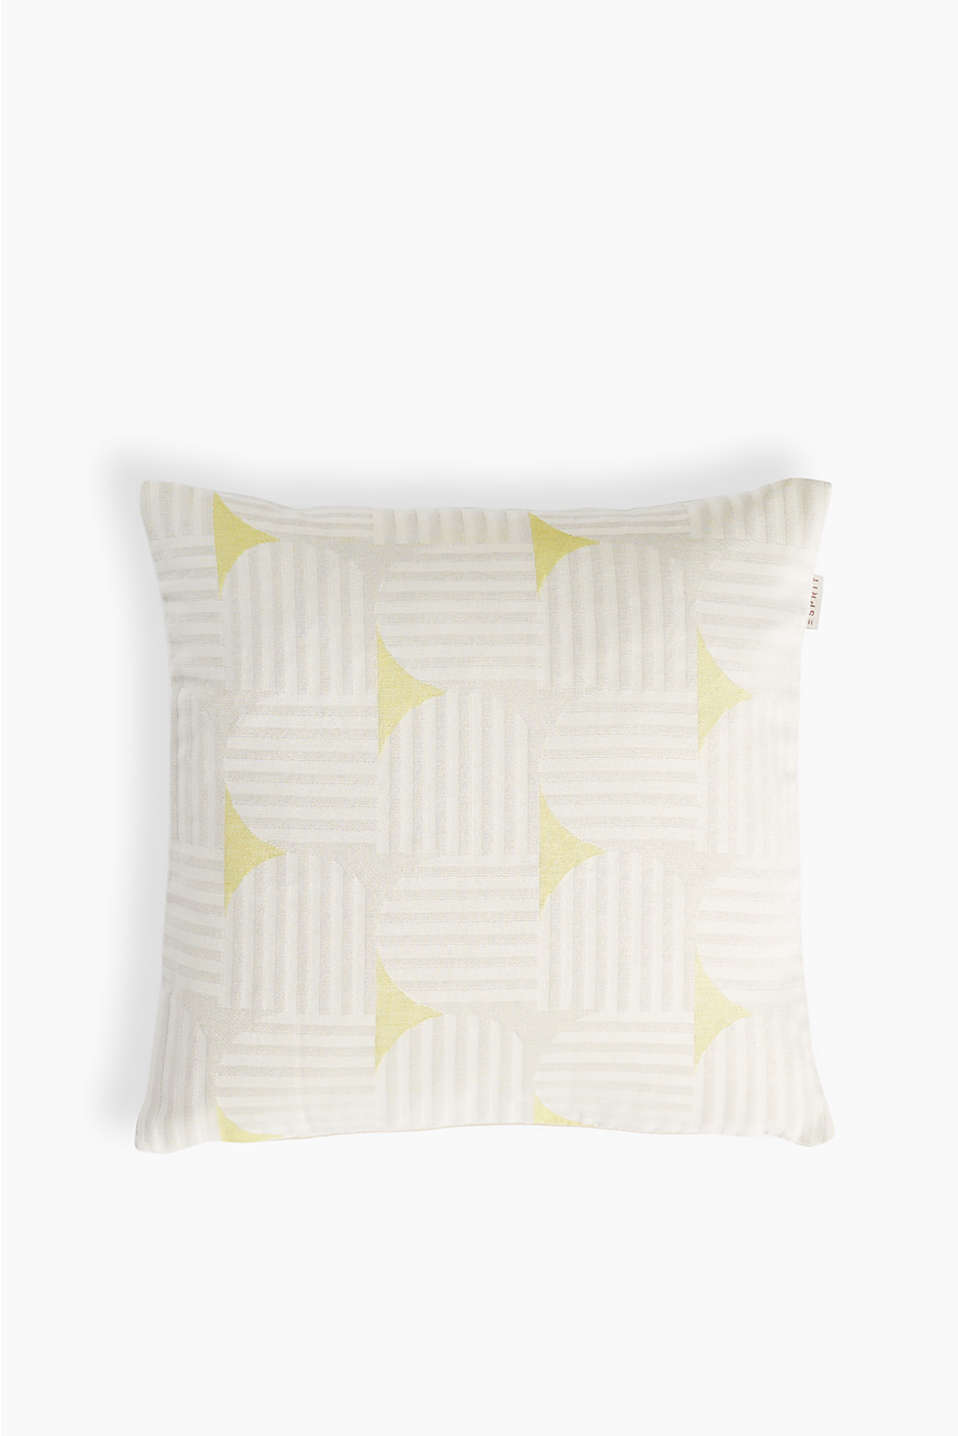 Cushion cover with an interwoven stripe pattern in a square format